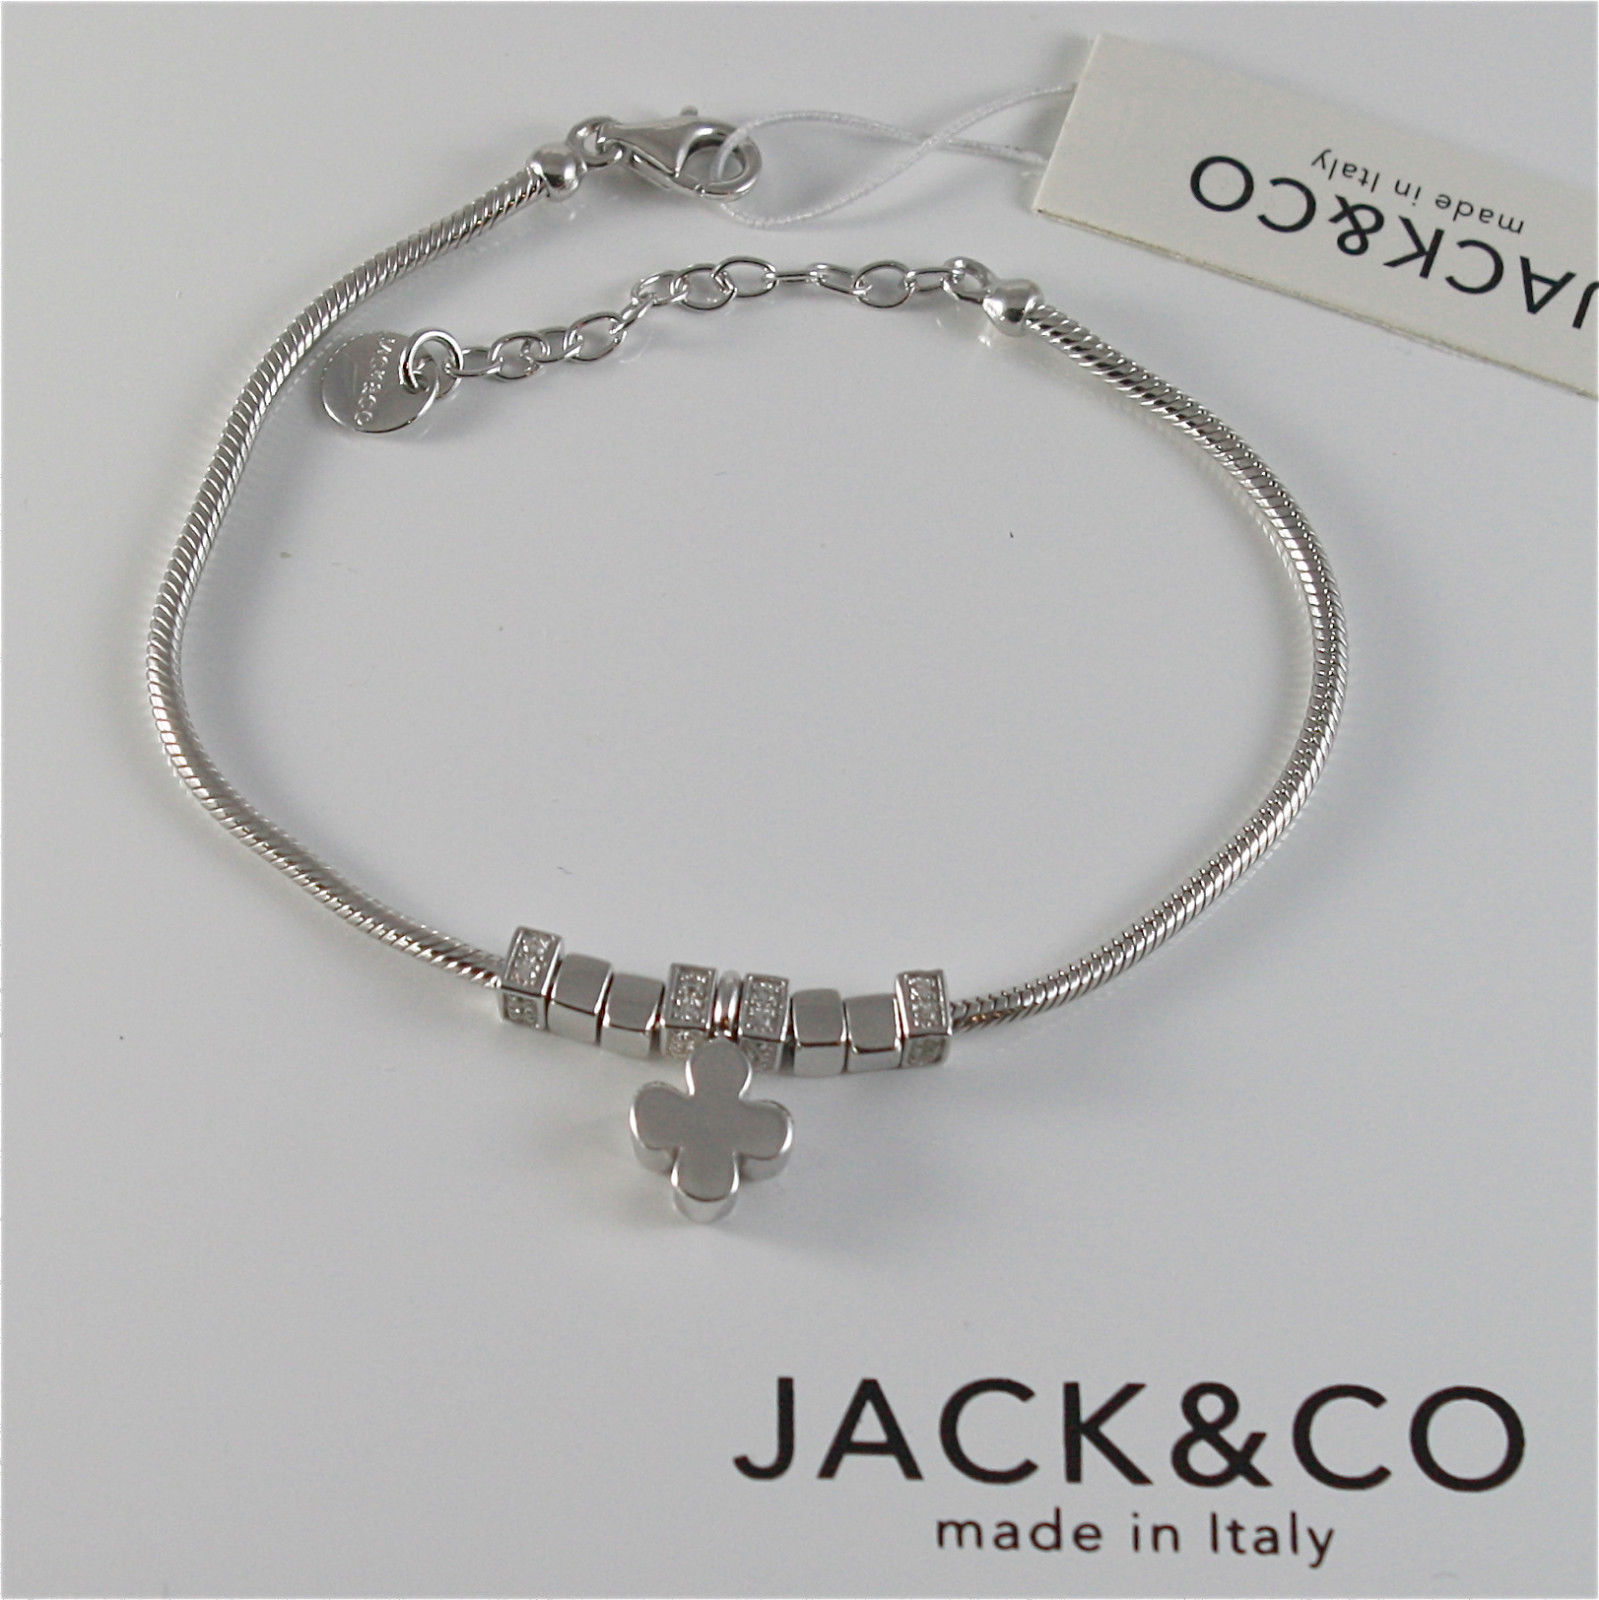 925 RHODIUM SILVER JACK&CO BRACELET WITH SHINY FOUR LEAF CLOVER  MADE IN ITALY